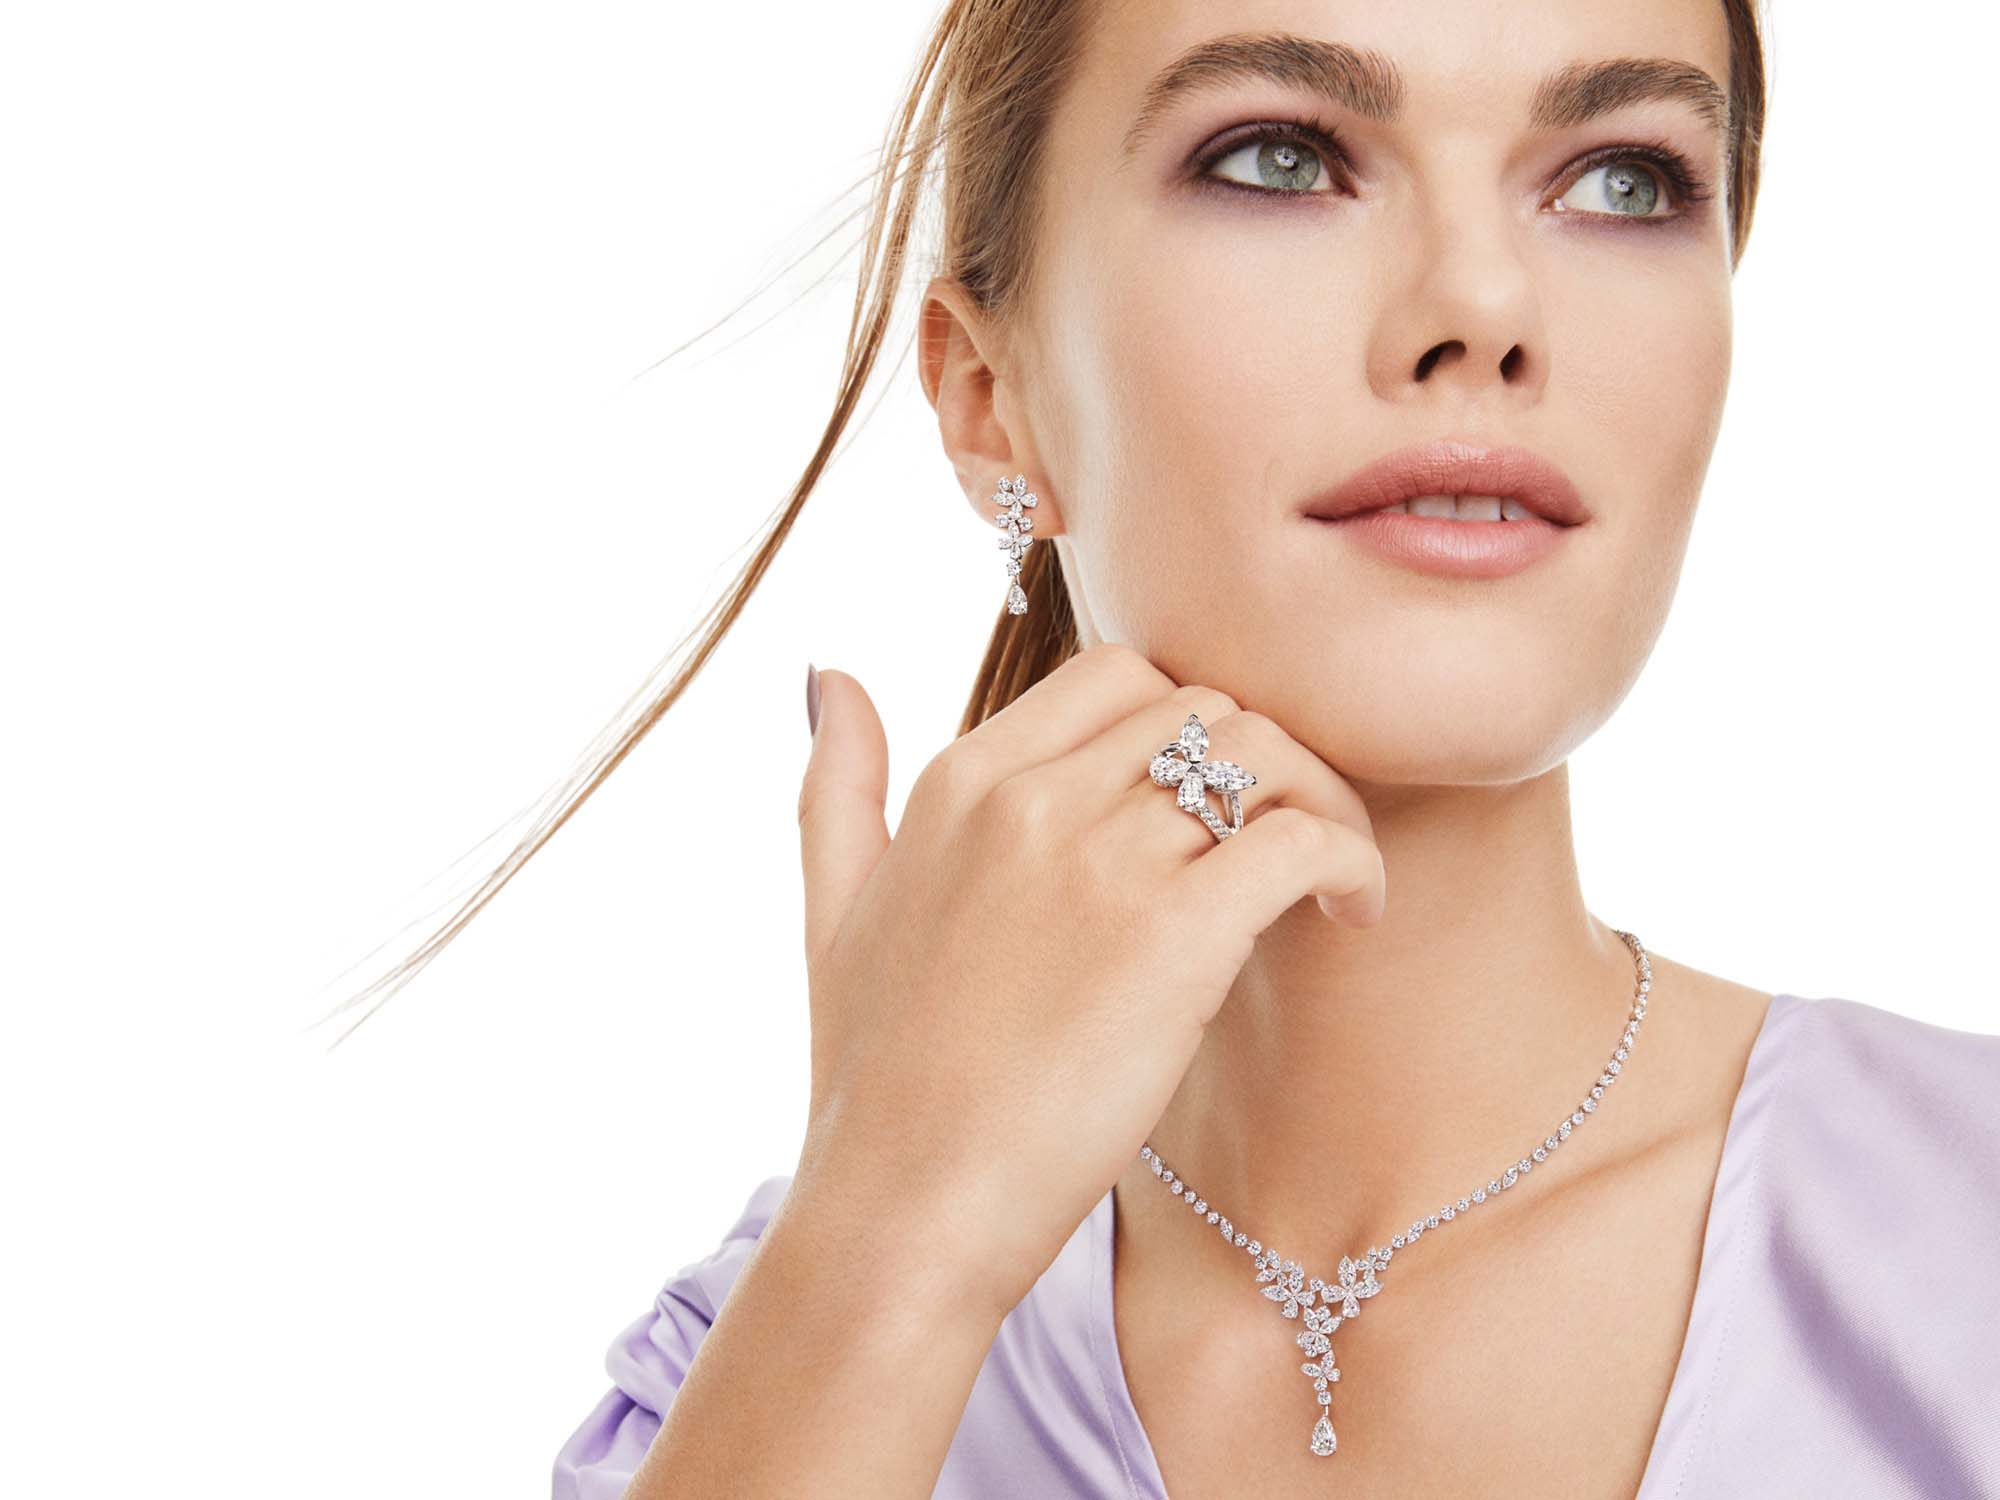 Model wearing Graff Classic Butterfly Diamond Ring, Classic Butterfly Diamond Drop Earrings and Classic Butterfly Diamond Necklace from the Graff jewellery collection